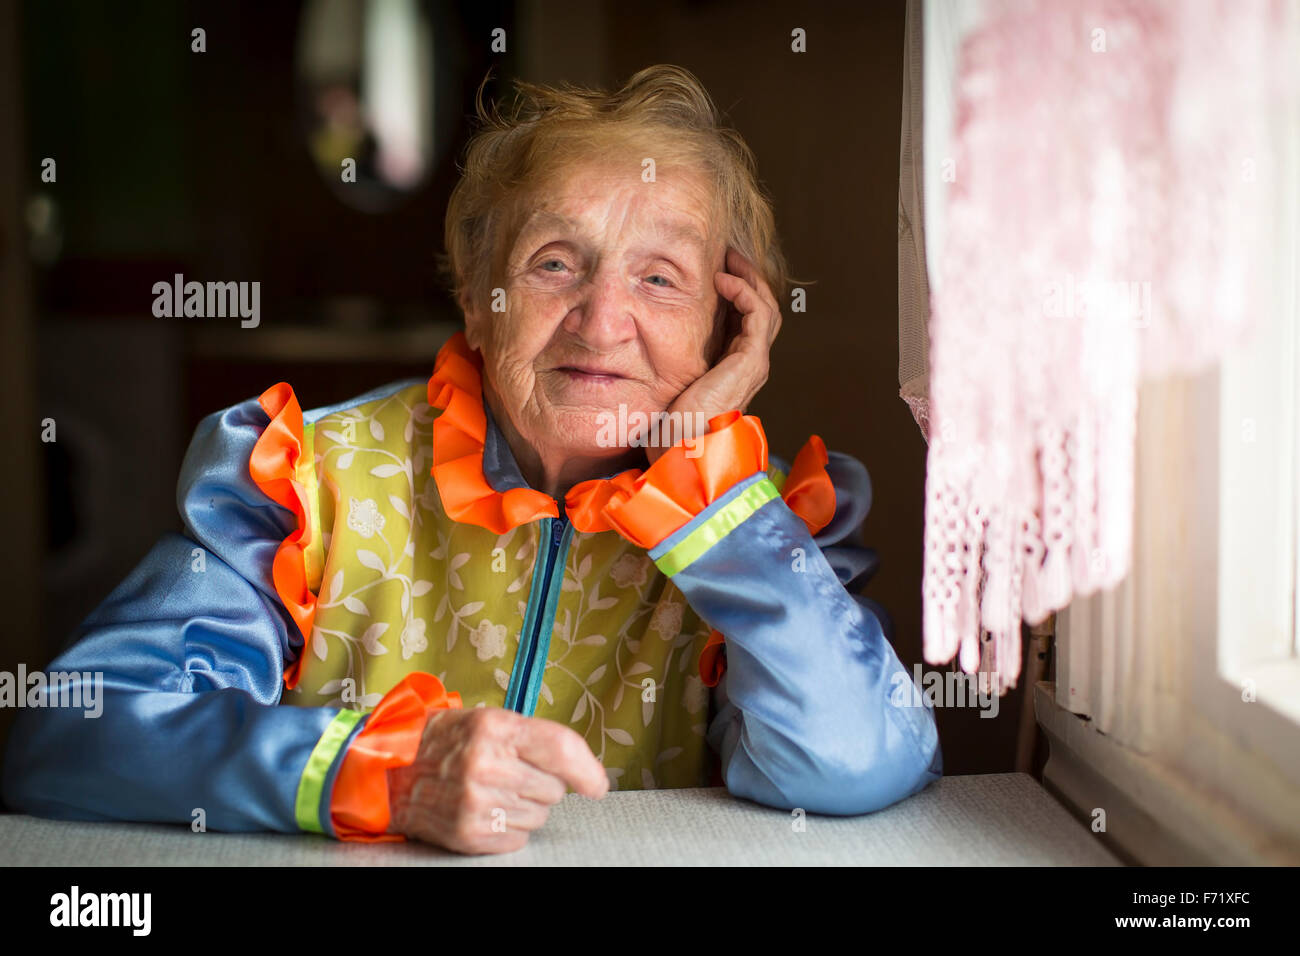 An elderly woman in Cossack clothes, a portrait by the window. - Stock Image